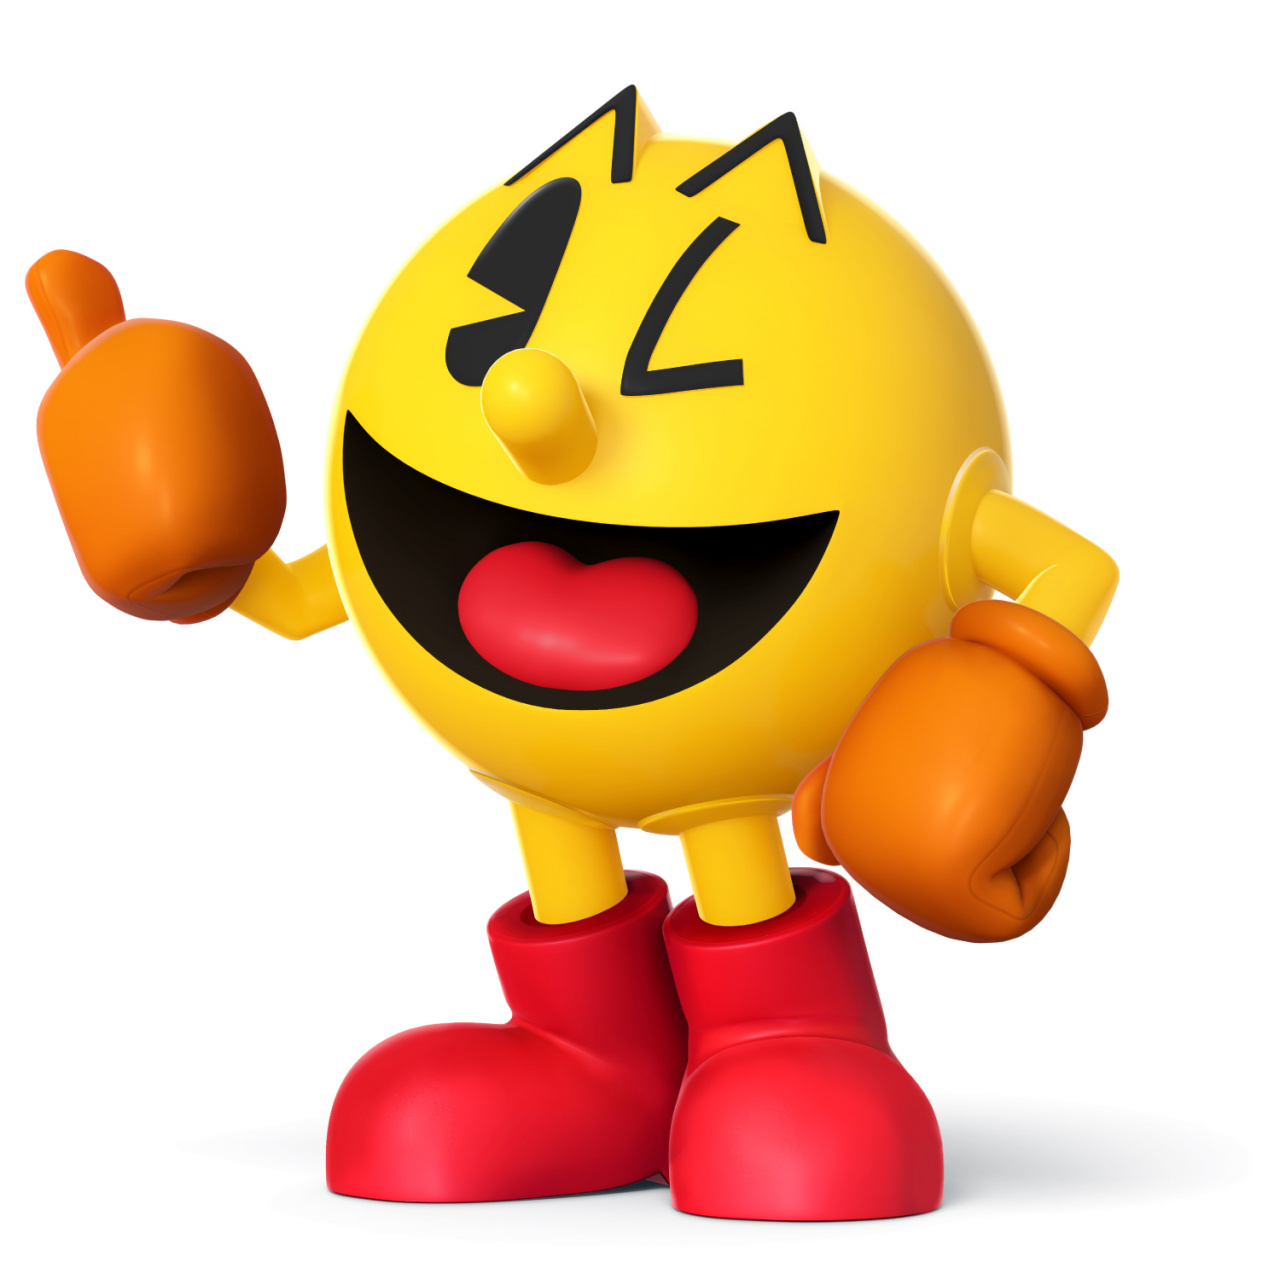 Pac-Man Maker trademark filed by Bandai Namco